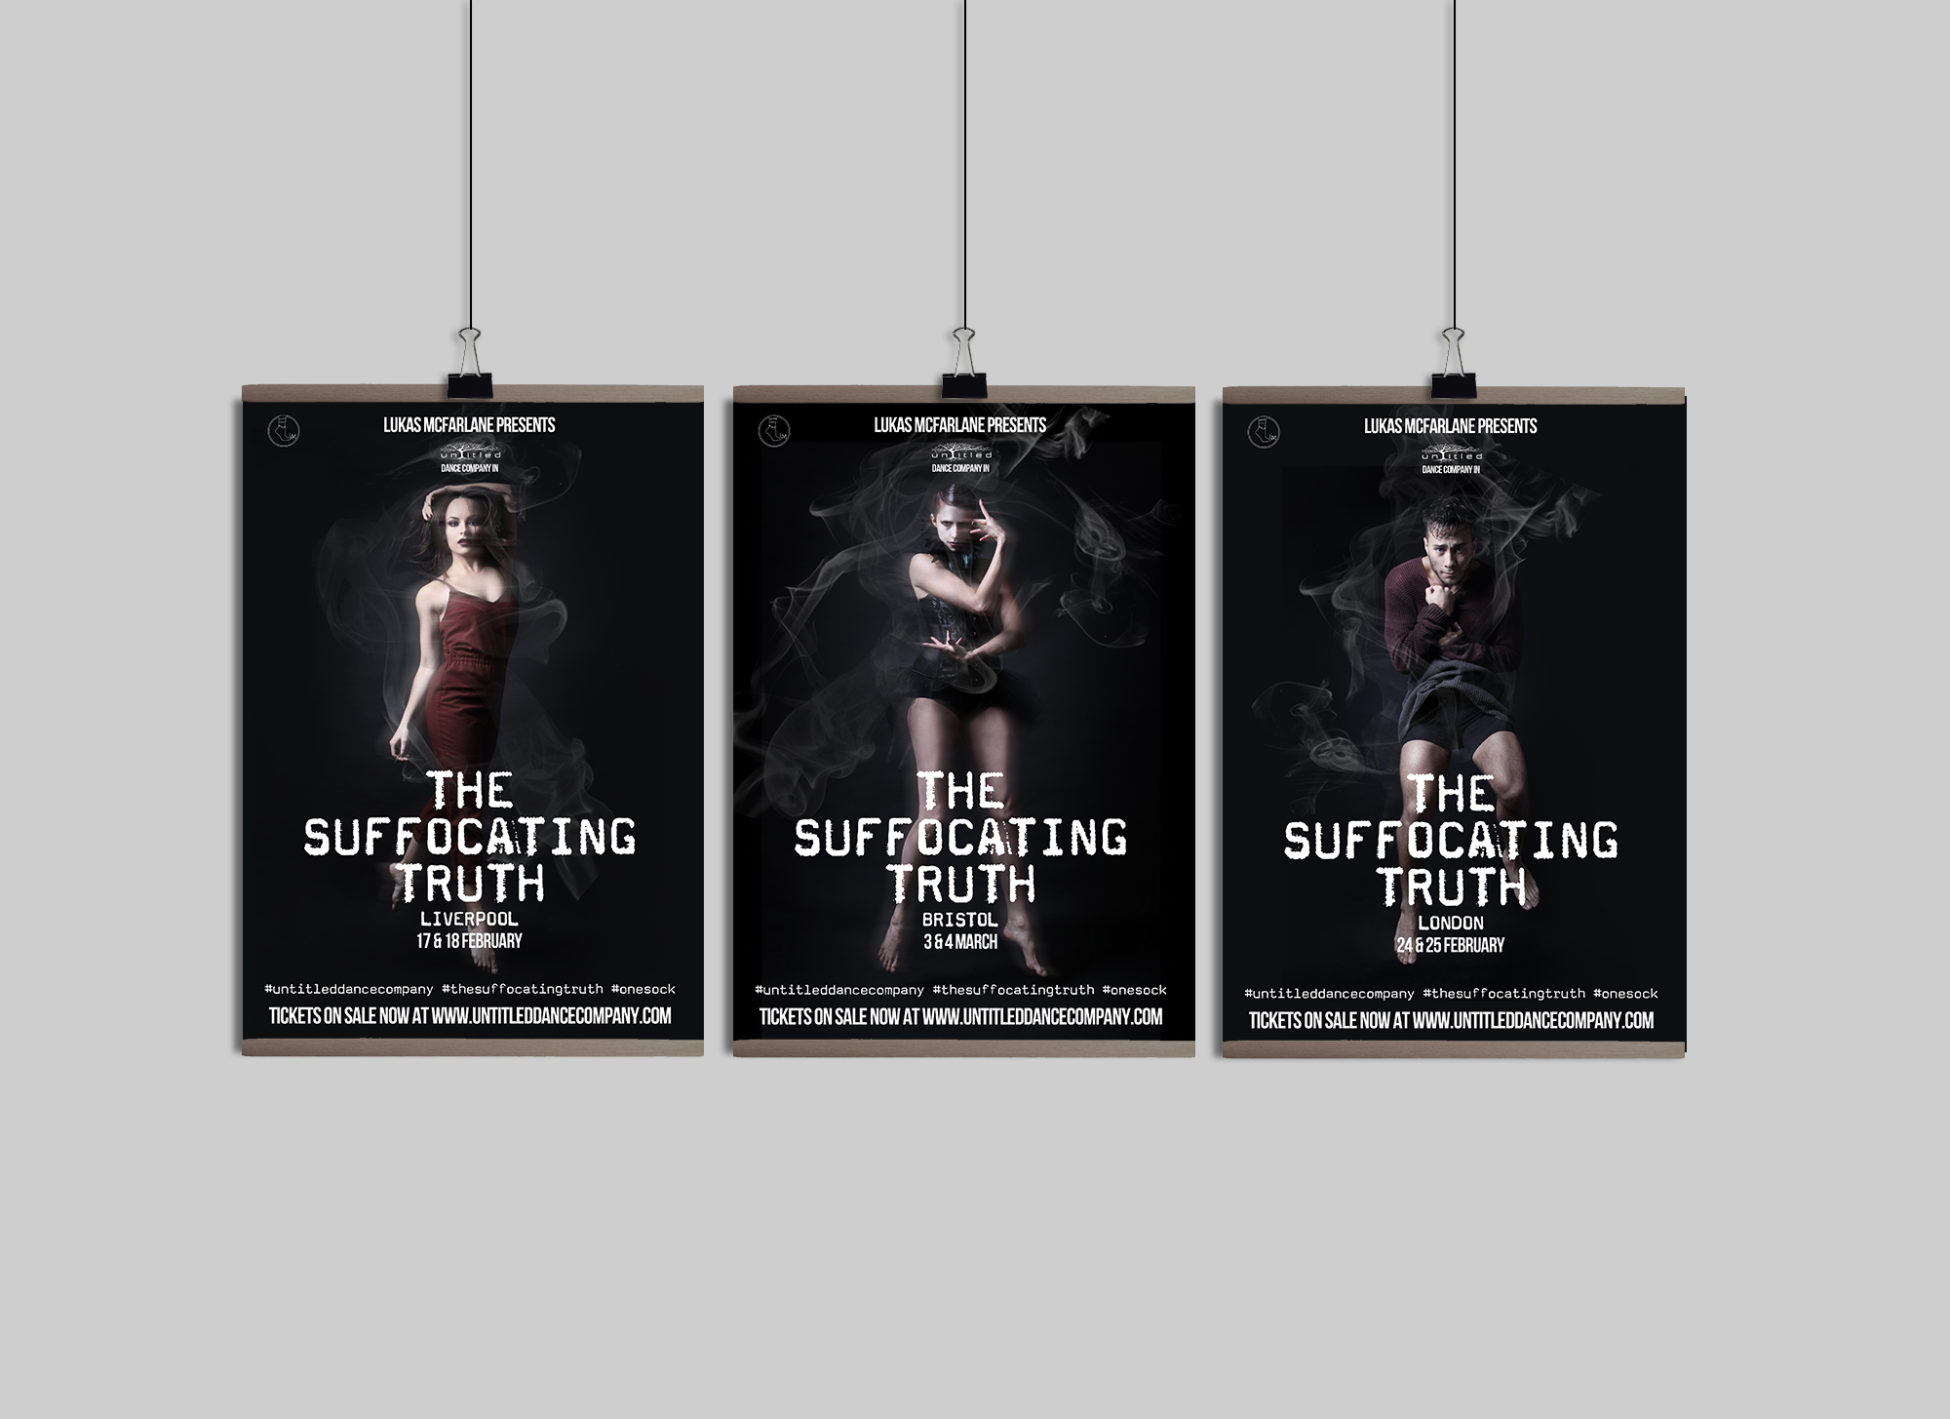 Lukas mcfarlane suffocating truth posters